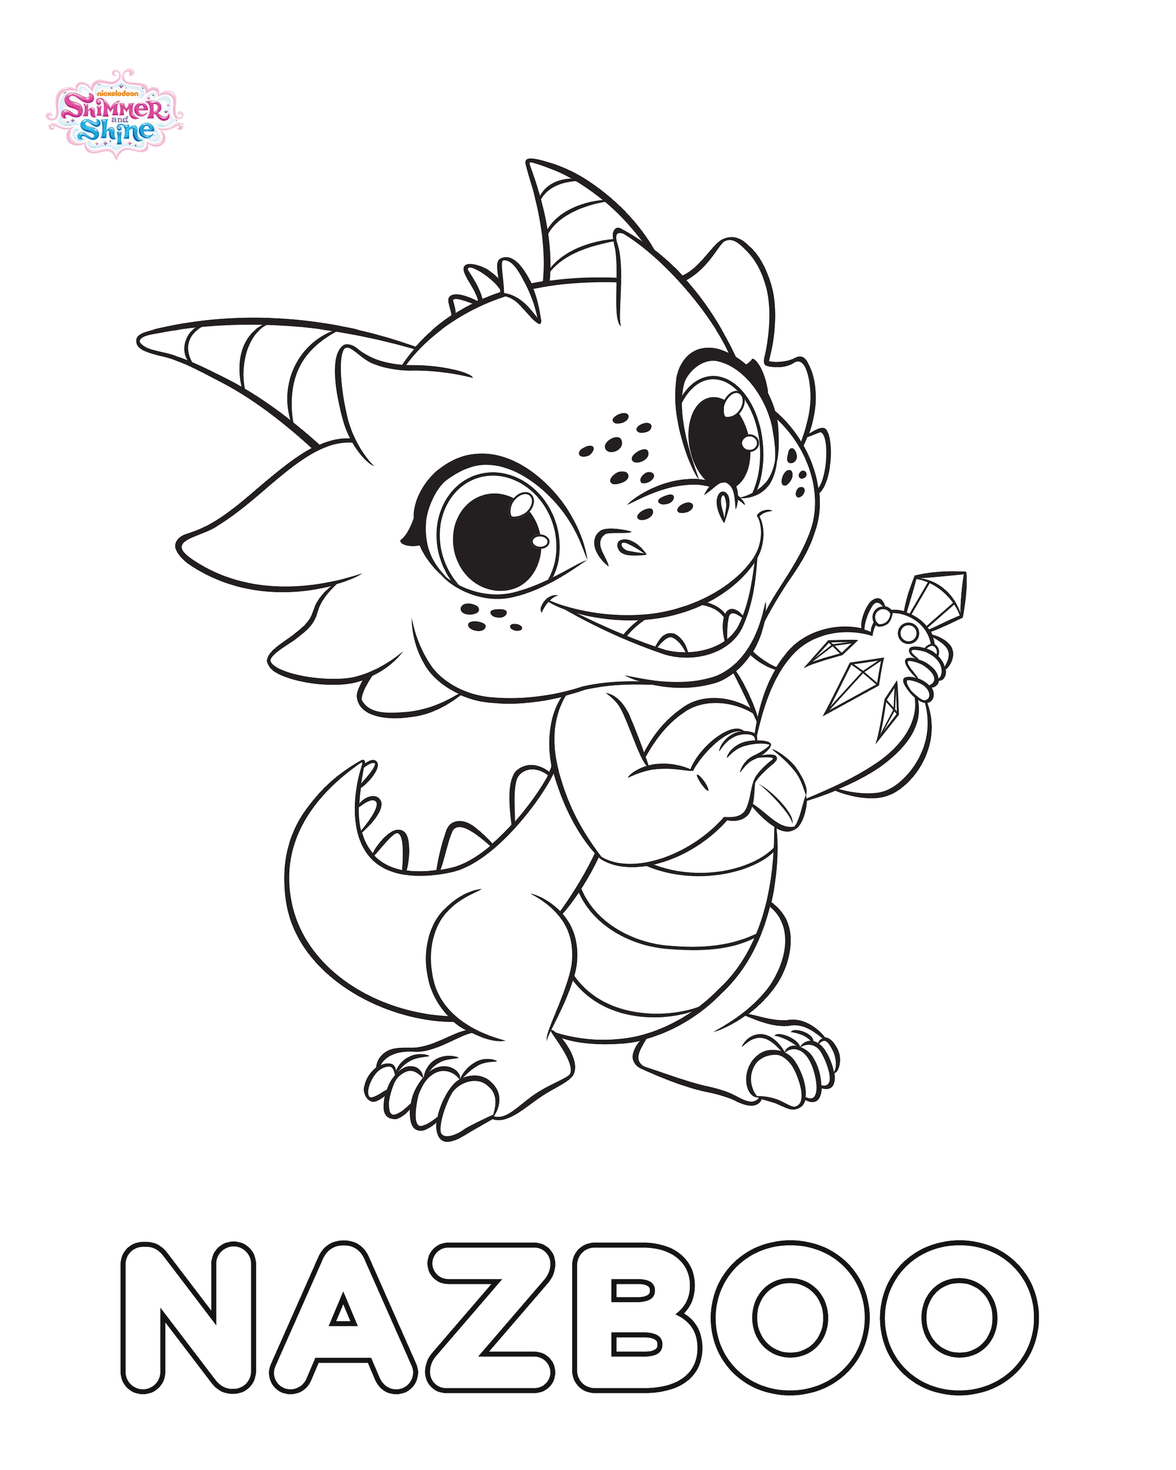 Nazboo Shimmer and Shine Coloring Pages